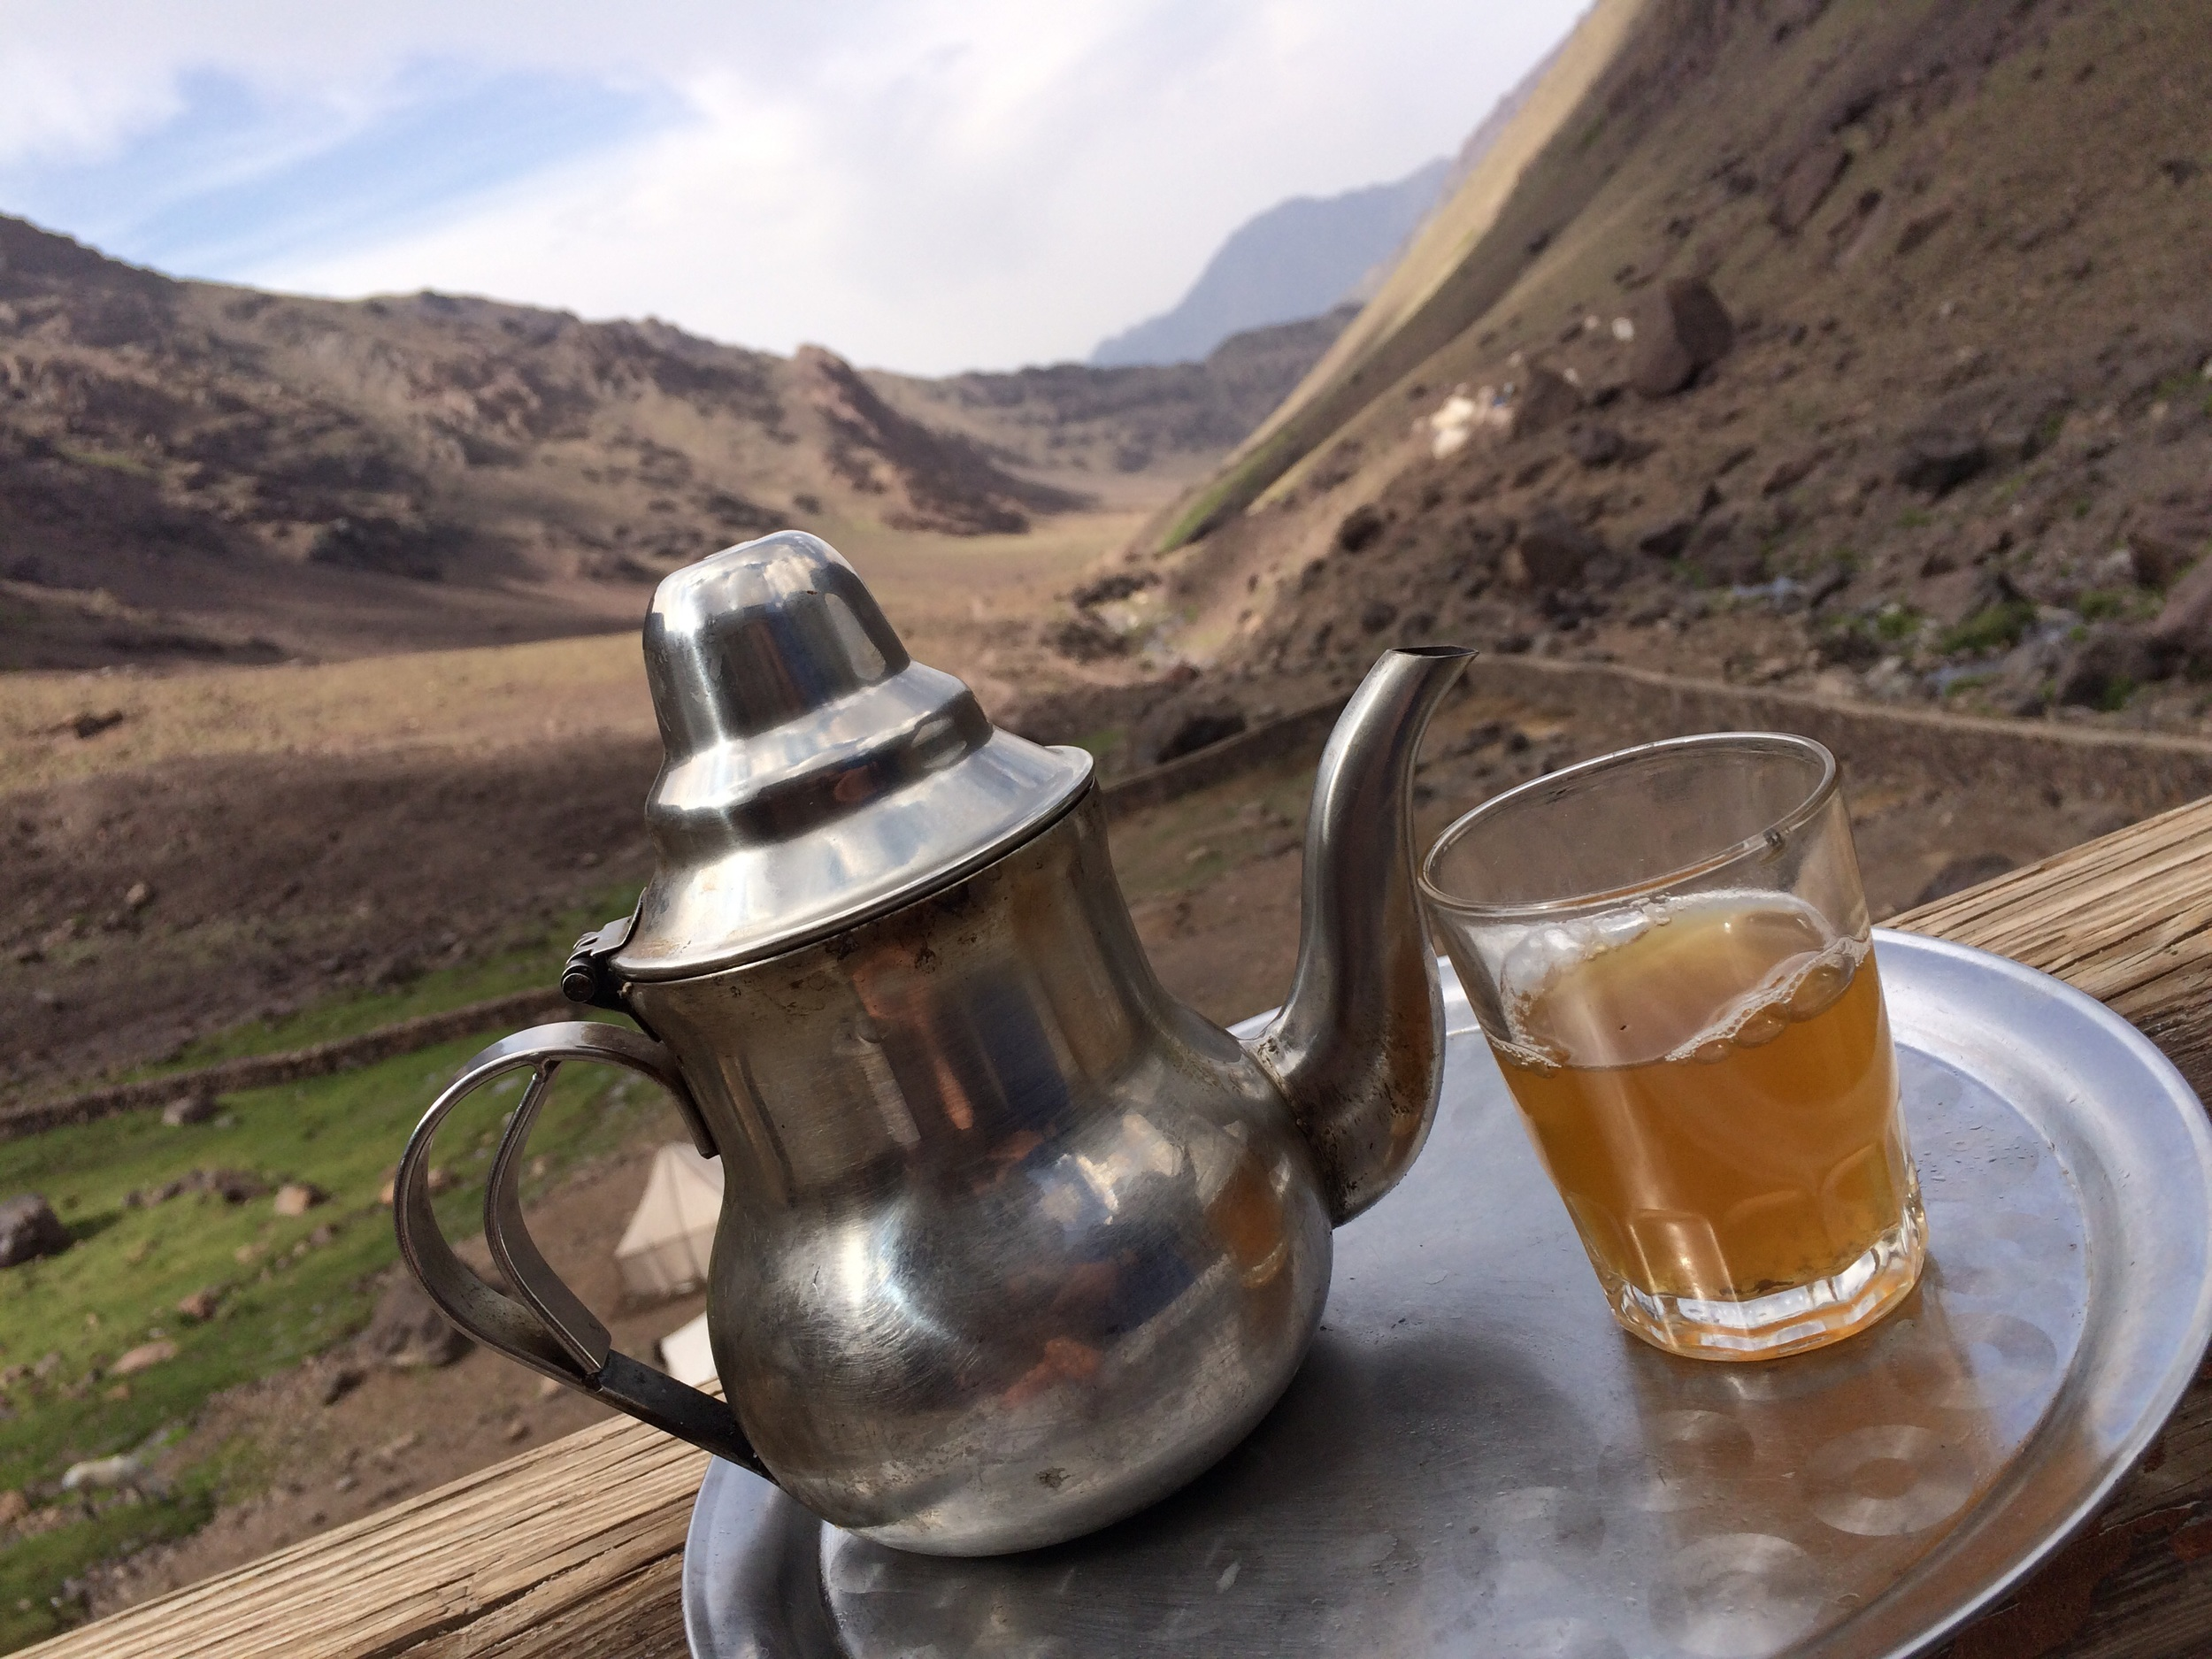 Tea after arriving at the Refuge